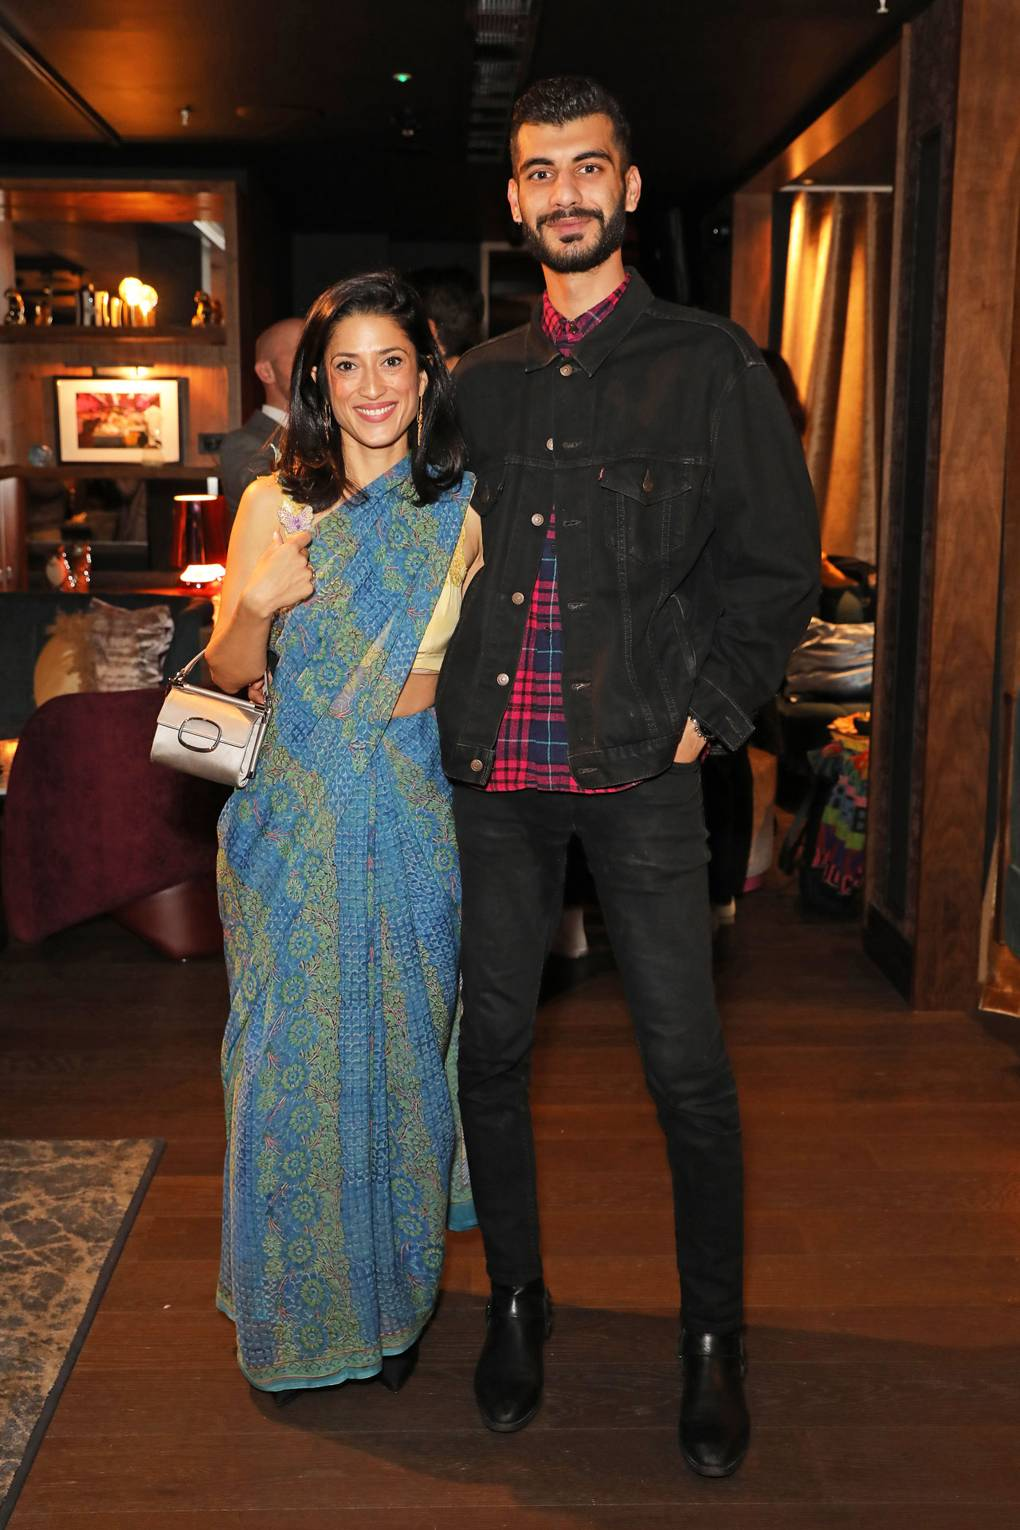 Fatima Bhutto hosts the launch of her book at Nolita Social